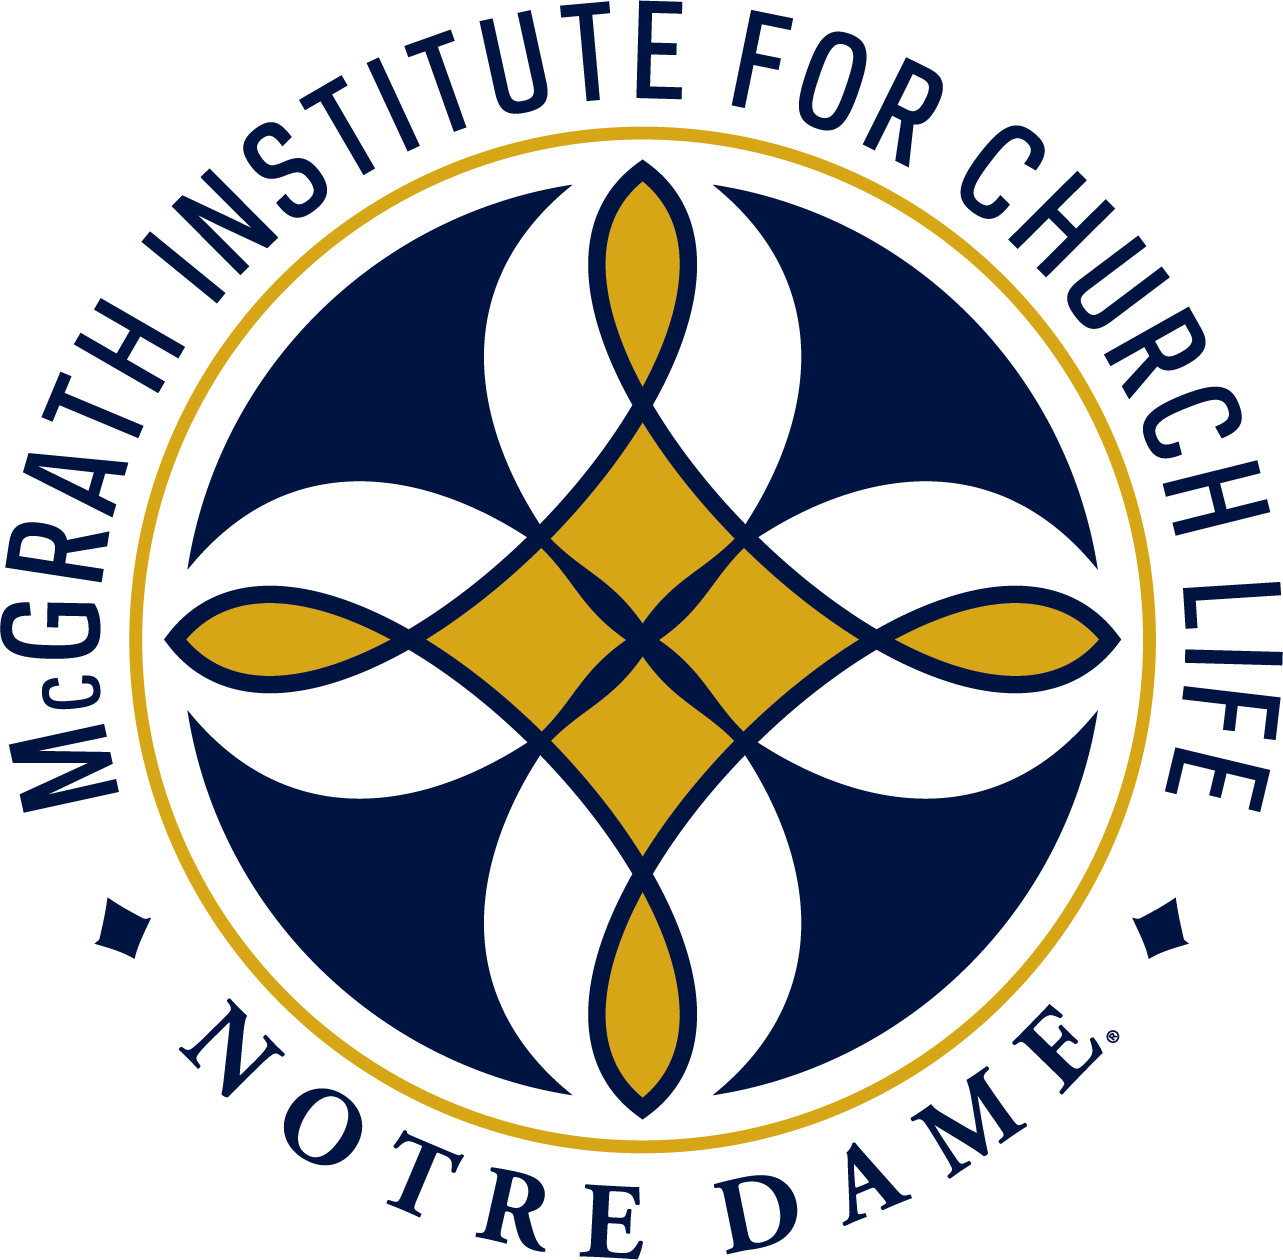 Notre Dame Office of Life and Human Dignity